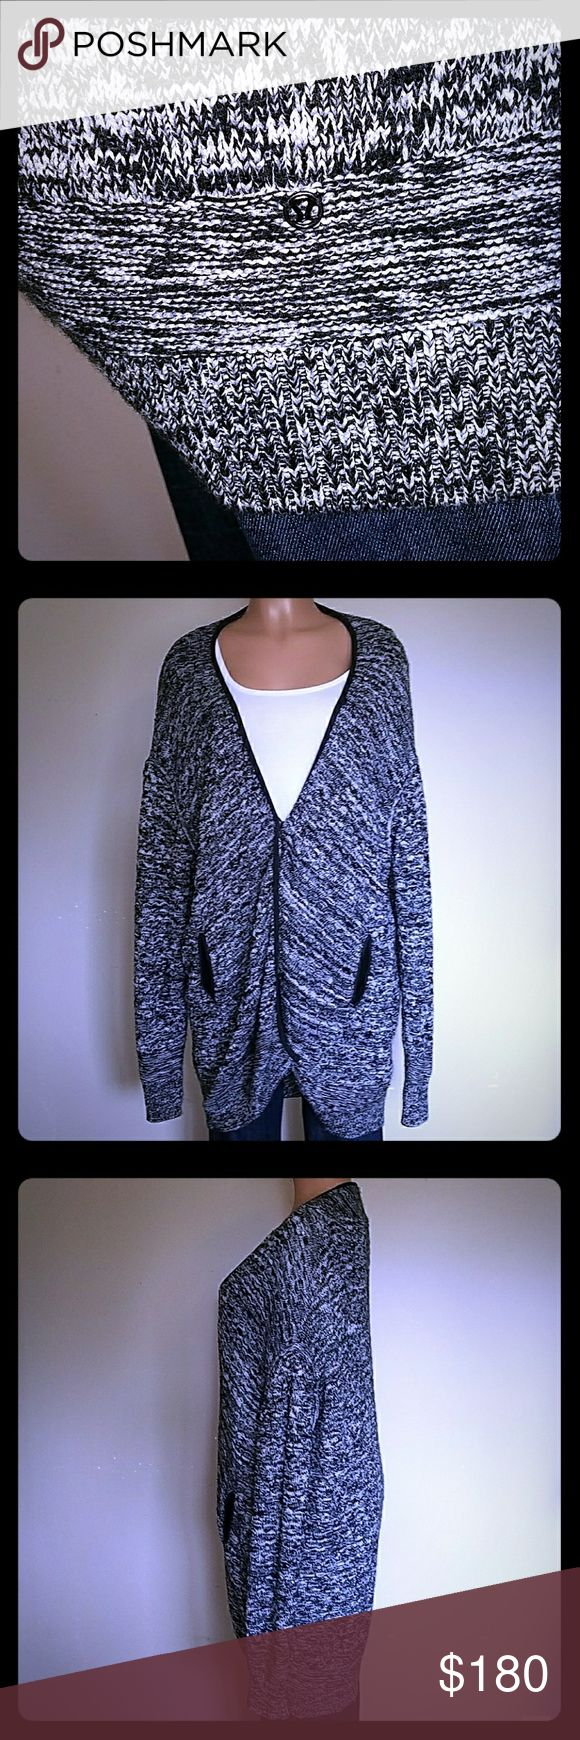 ❤RARE❤ lululemon Long Cardigan Sweater Sz 8 AWESOME lululemon Long Cardigan Sweater Size: 8 (But is oversized and would fit a 10/12, made to be big) Color: Heathered Gray/Black/White Snap front Side pockets lululemon athletica Sweaters Cardigans